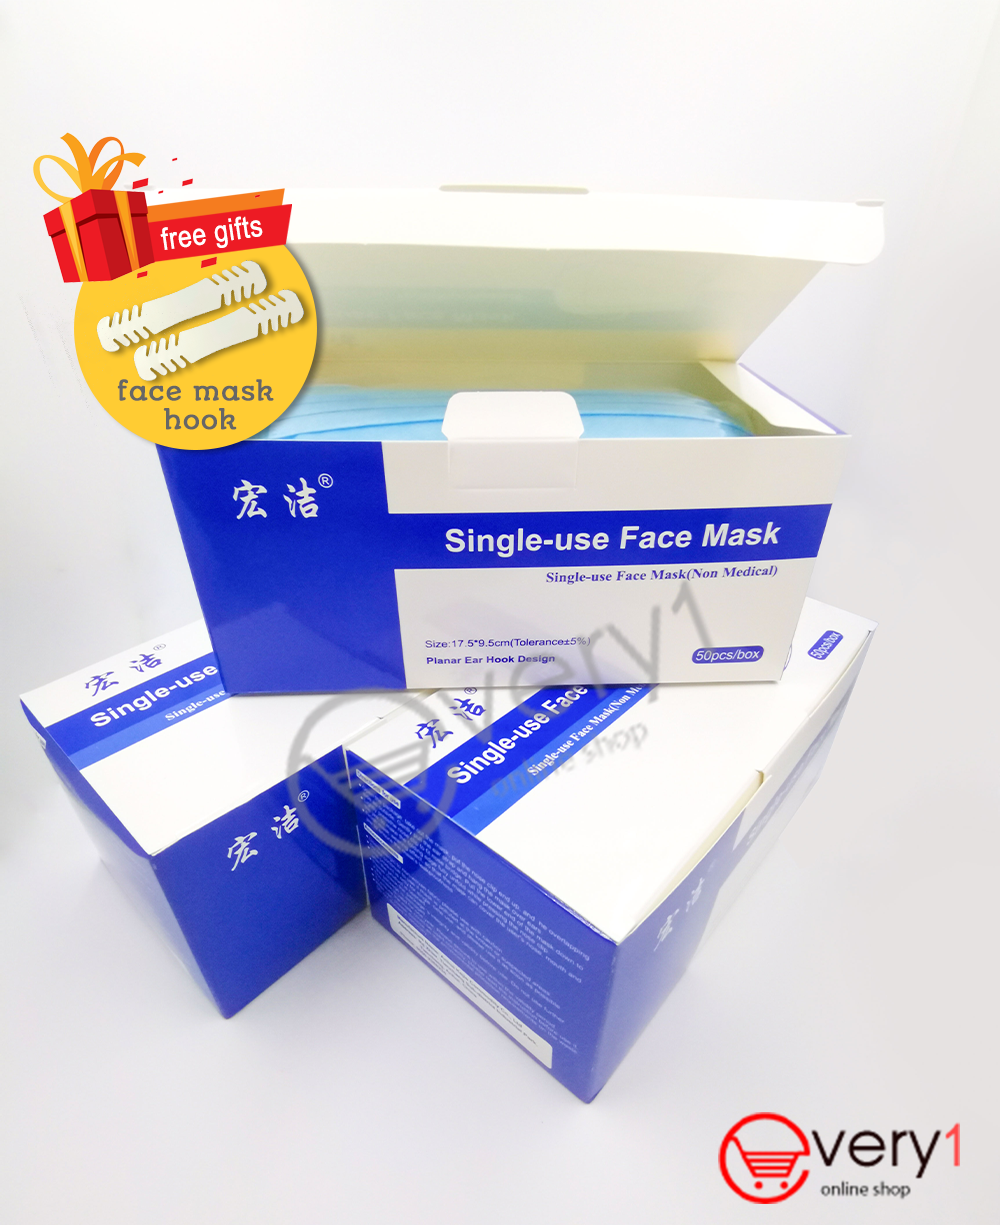 [FREE GIFTS] HJ Disposable 3 ply Face Mask - Adult - 3 Boxes